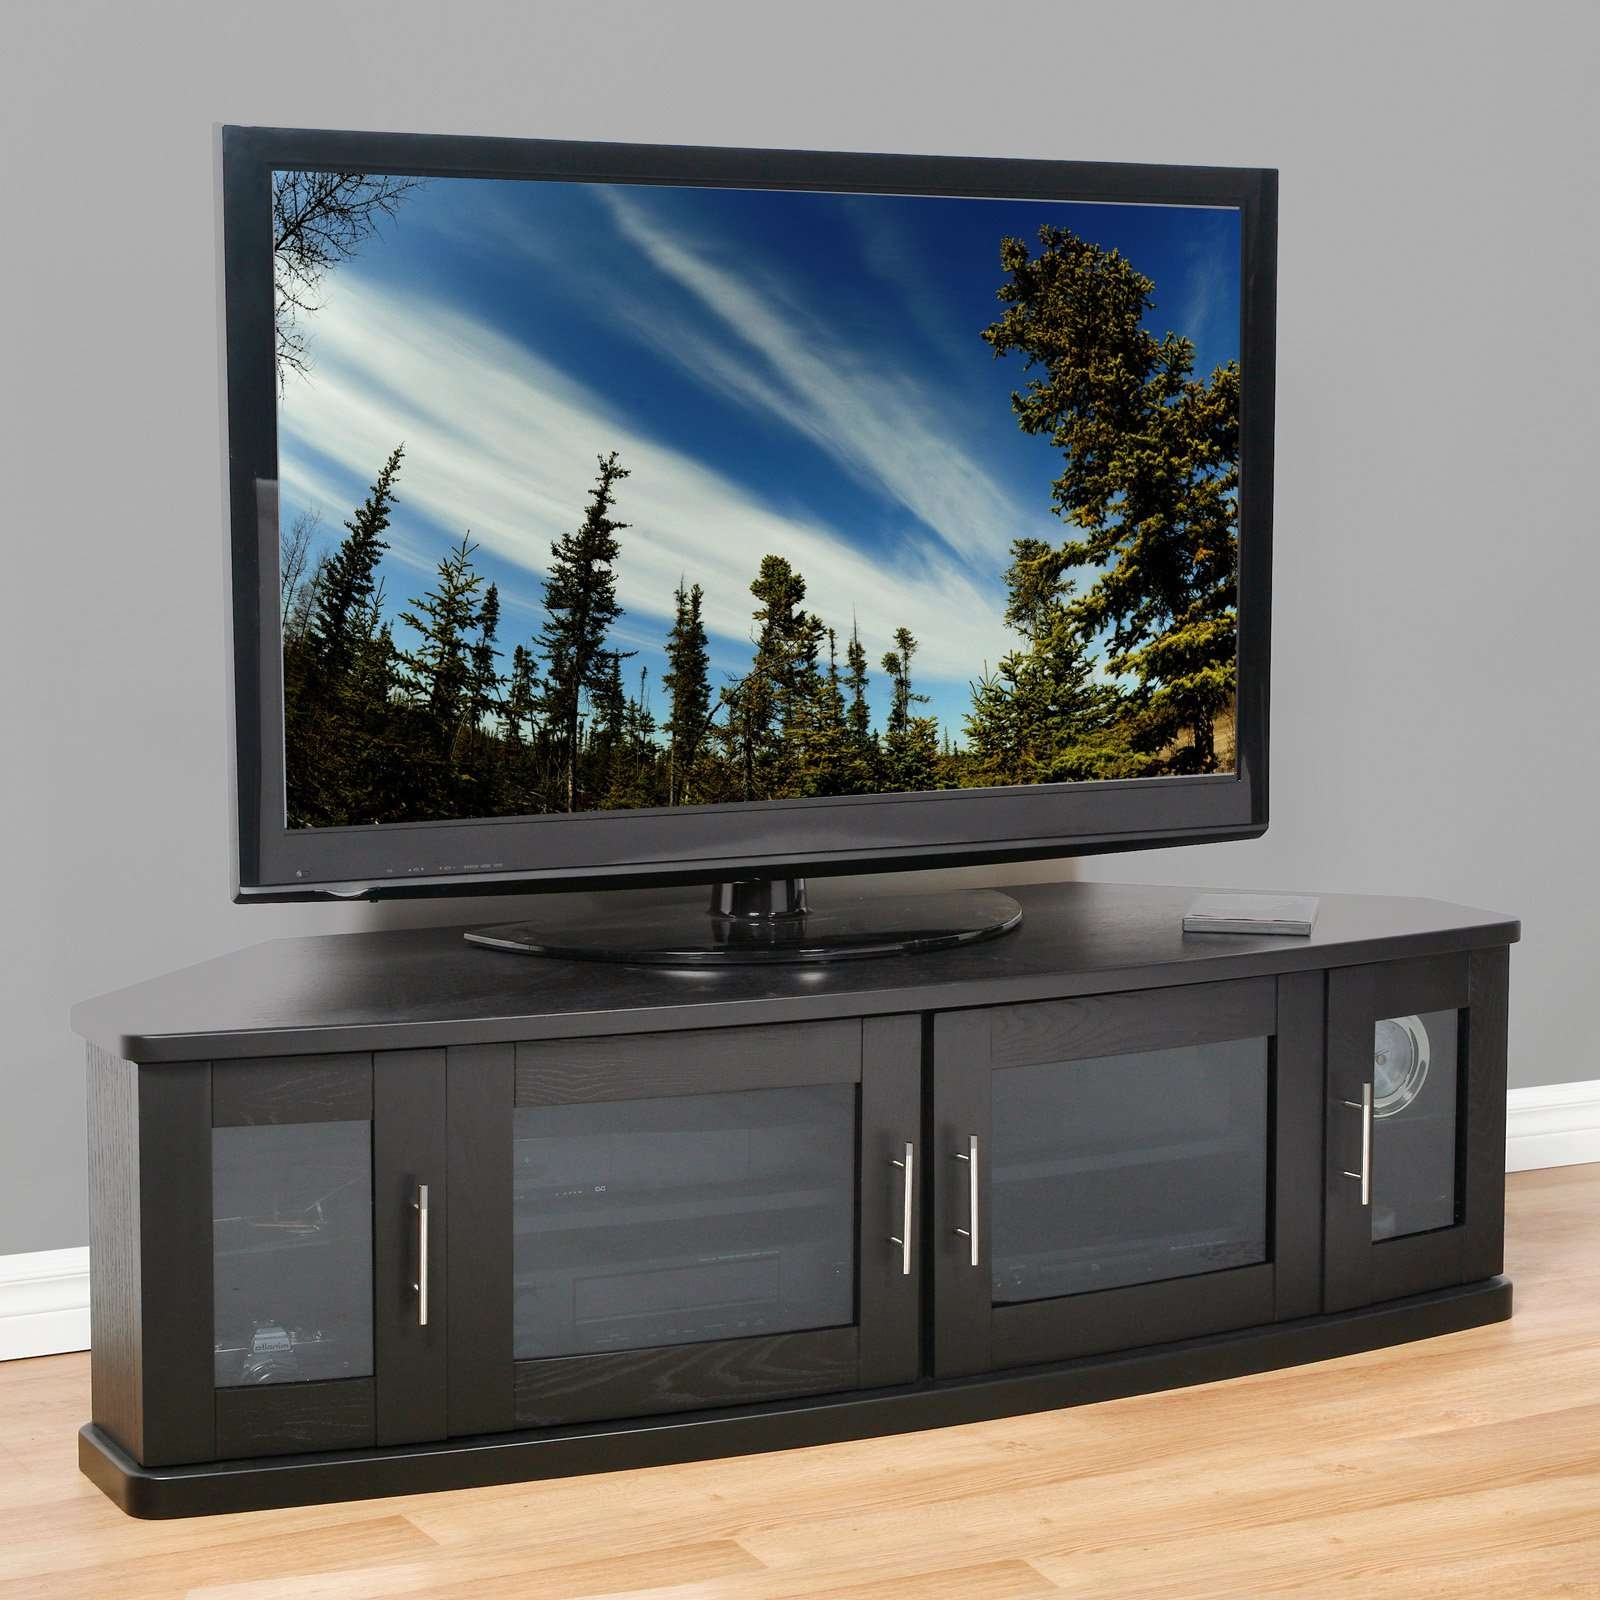 Tv Stand : 40 Fearsome 65 Inch Tv Corner Stand Pictures Concept In Corner Tv Stands 40 Inch (View 12 of 20)